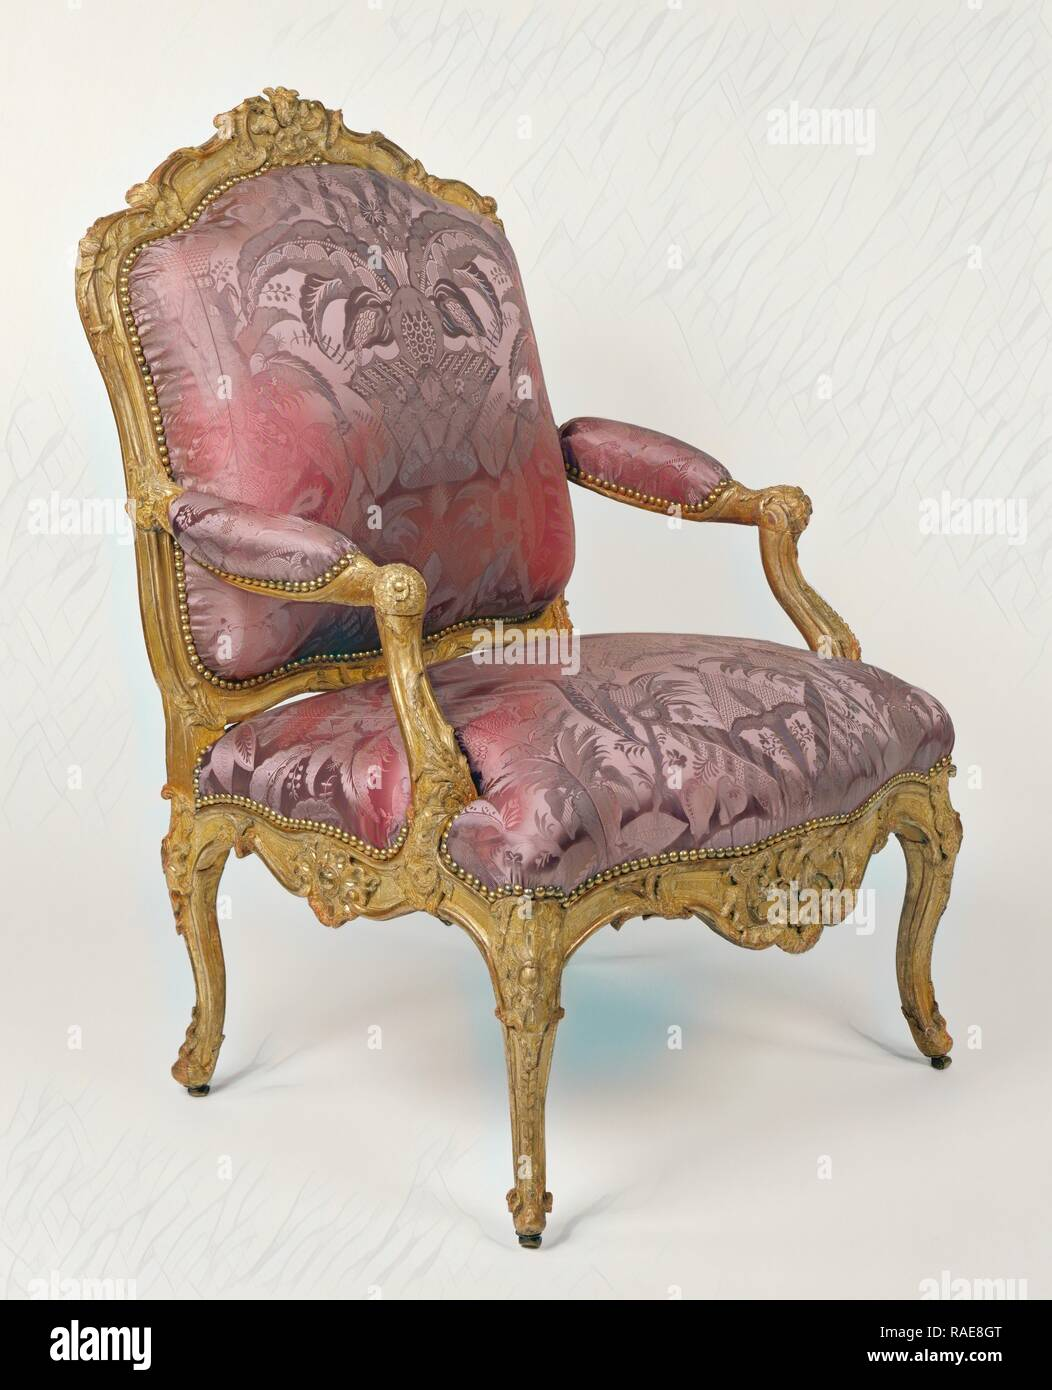 8346a7eed5e8e Armchair, Paris, France, about 1730 - 1735, Gessoed and gilded beech,